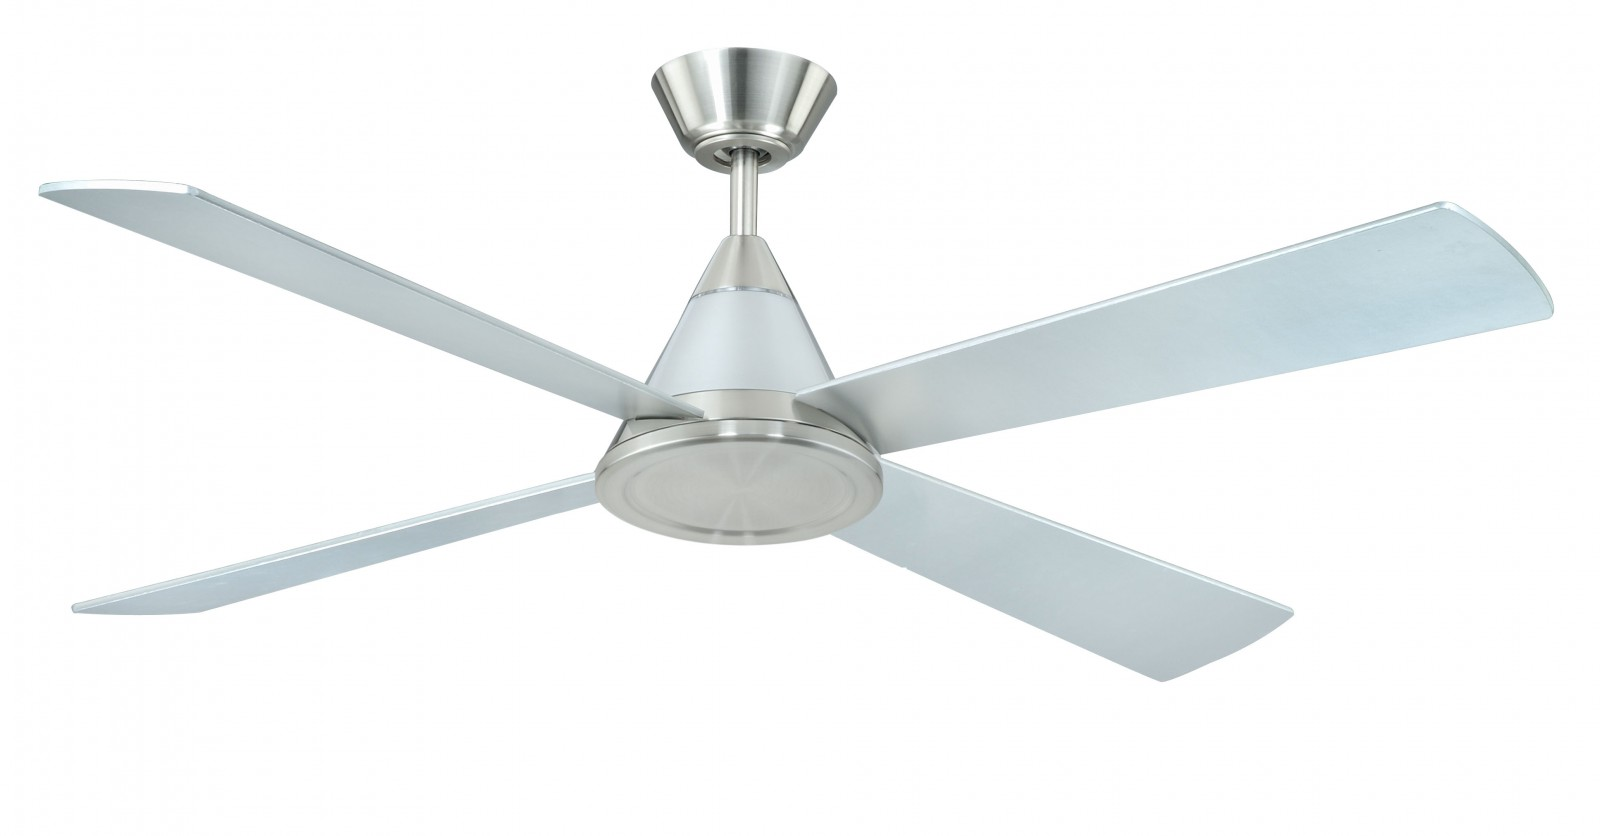 Energy Saving Dc Ceiling Fan Cosmos 132 Cm 52 With Remote Control